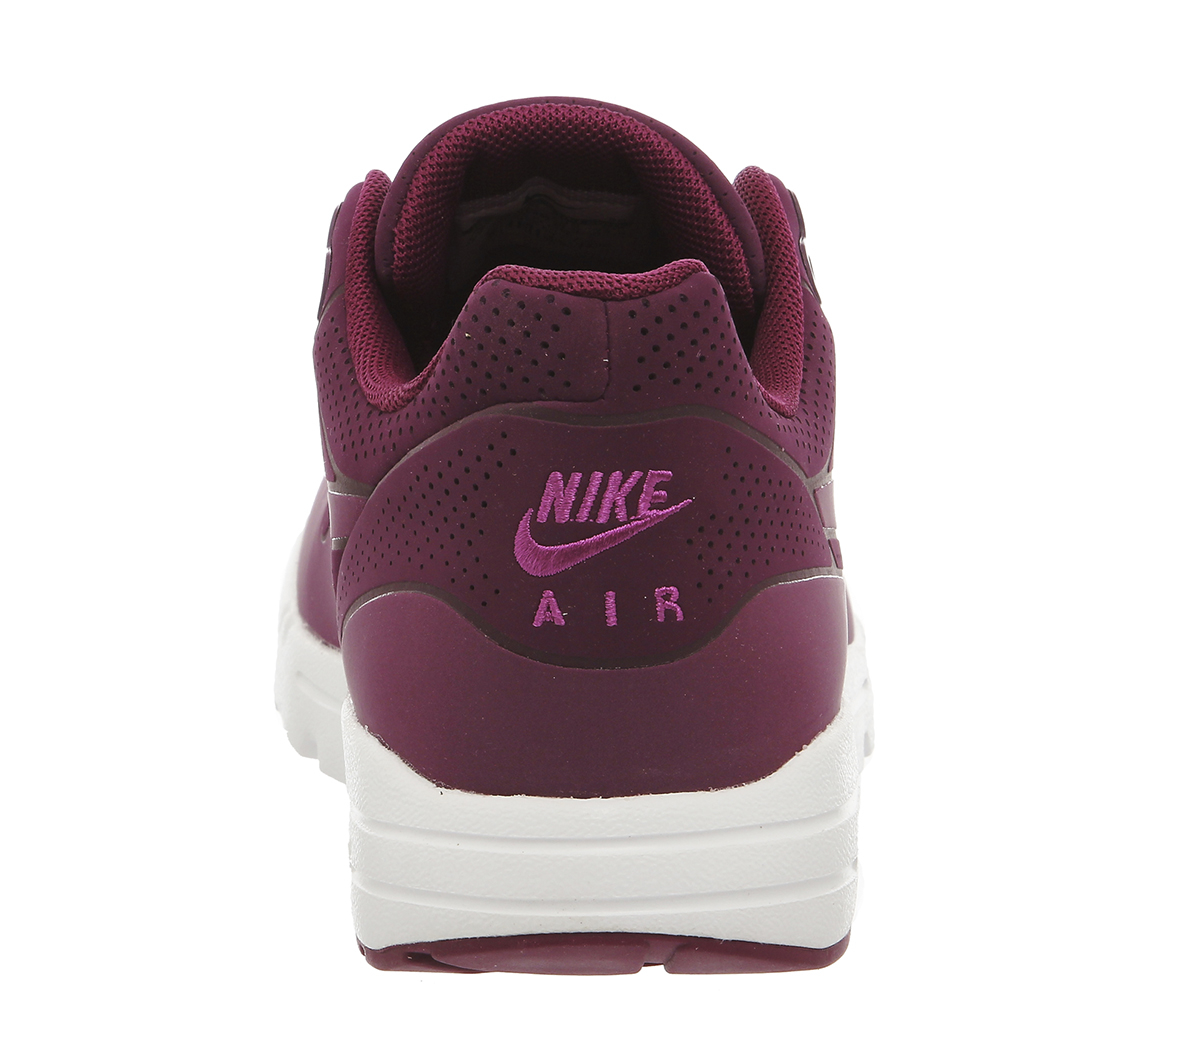 Air Max 1 Ultra Moire Trainers, Women's, Size: 5, Mulberry Purple